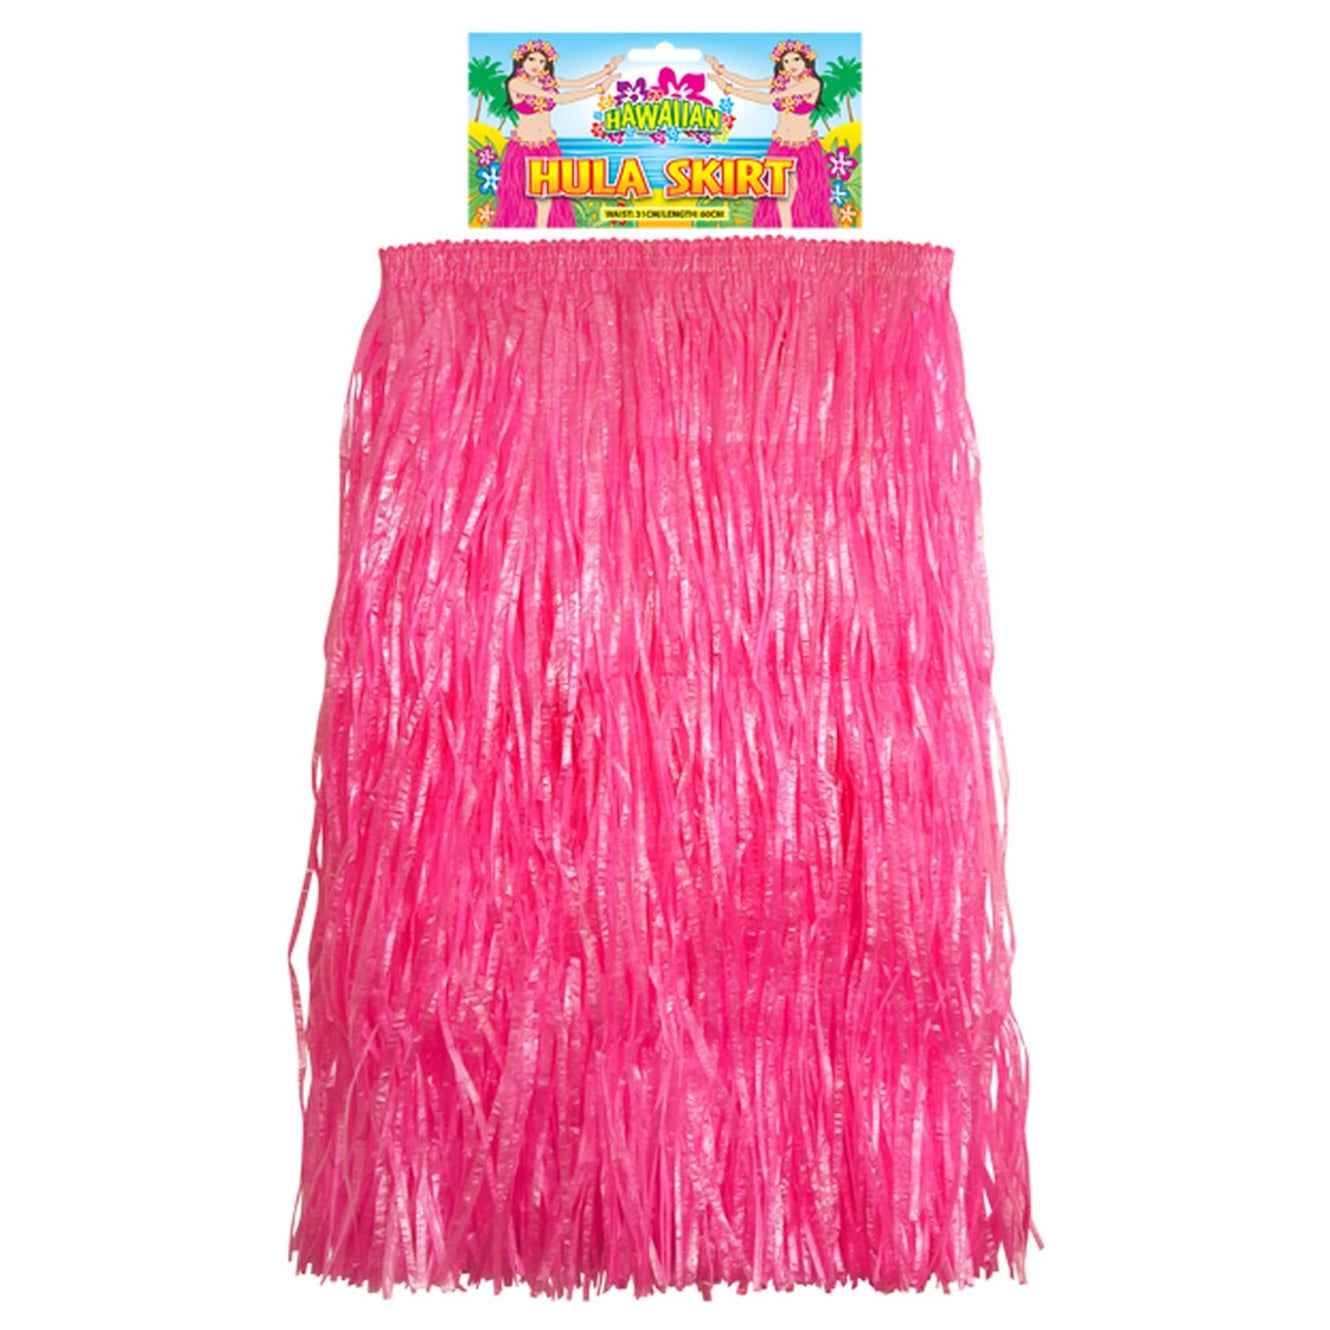 Hot Pink Hula Skirt (31cm x 60cm)